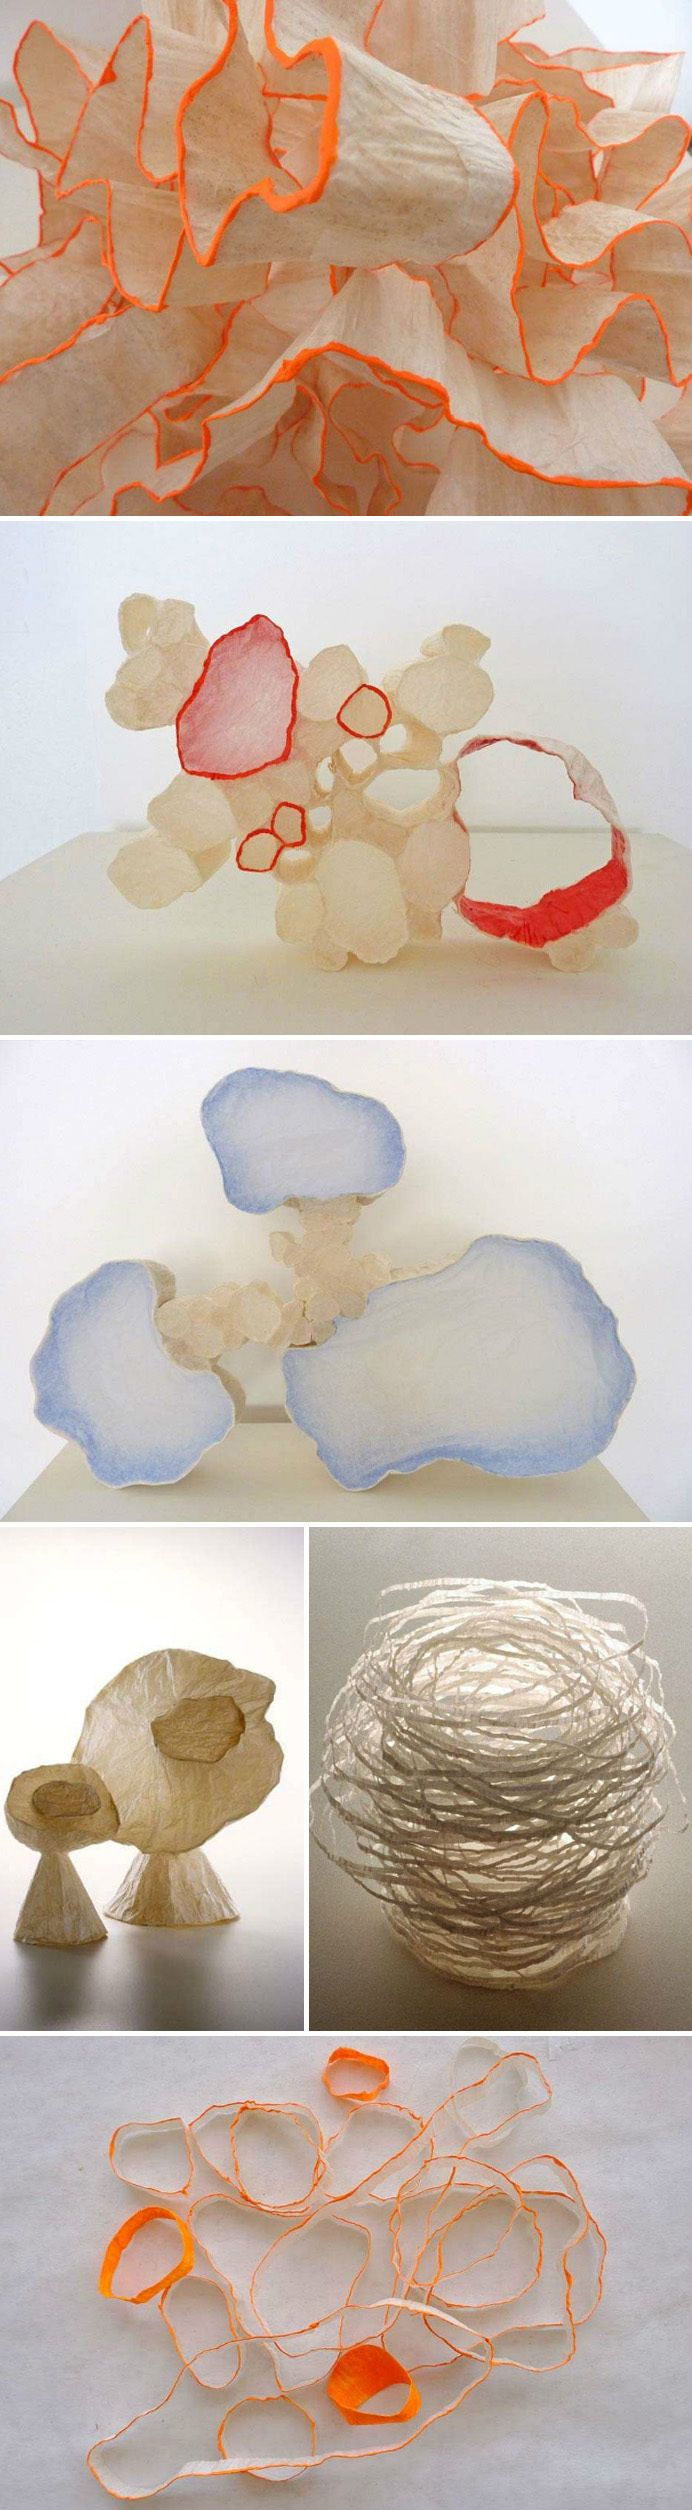 Mary Button Durell: Paper Sculpture collabcubed